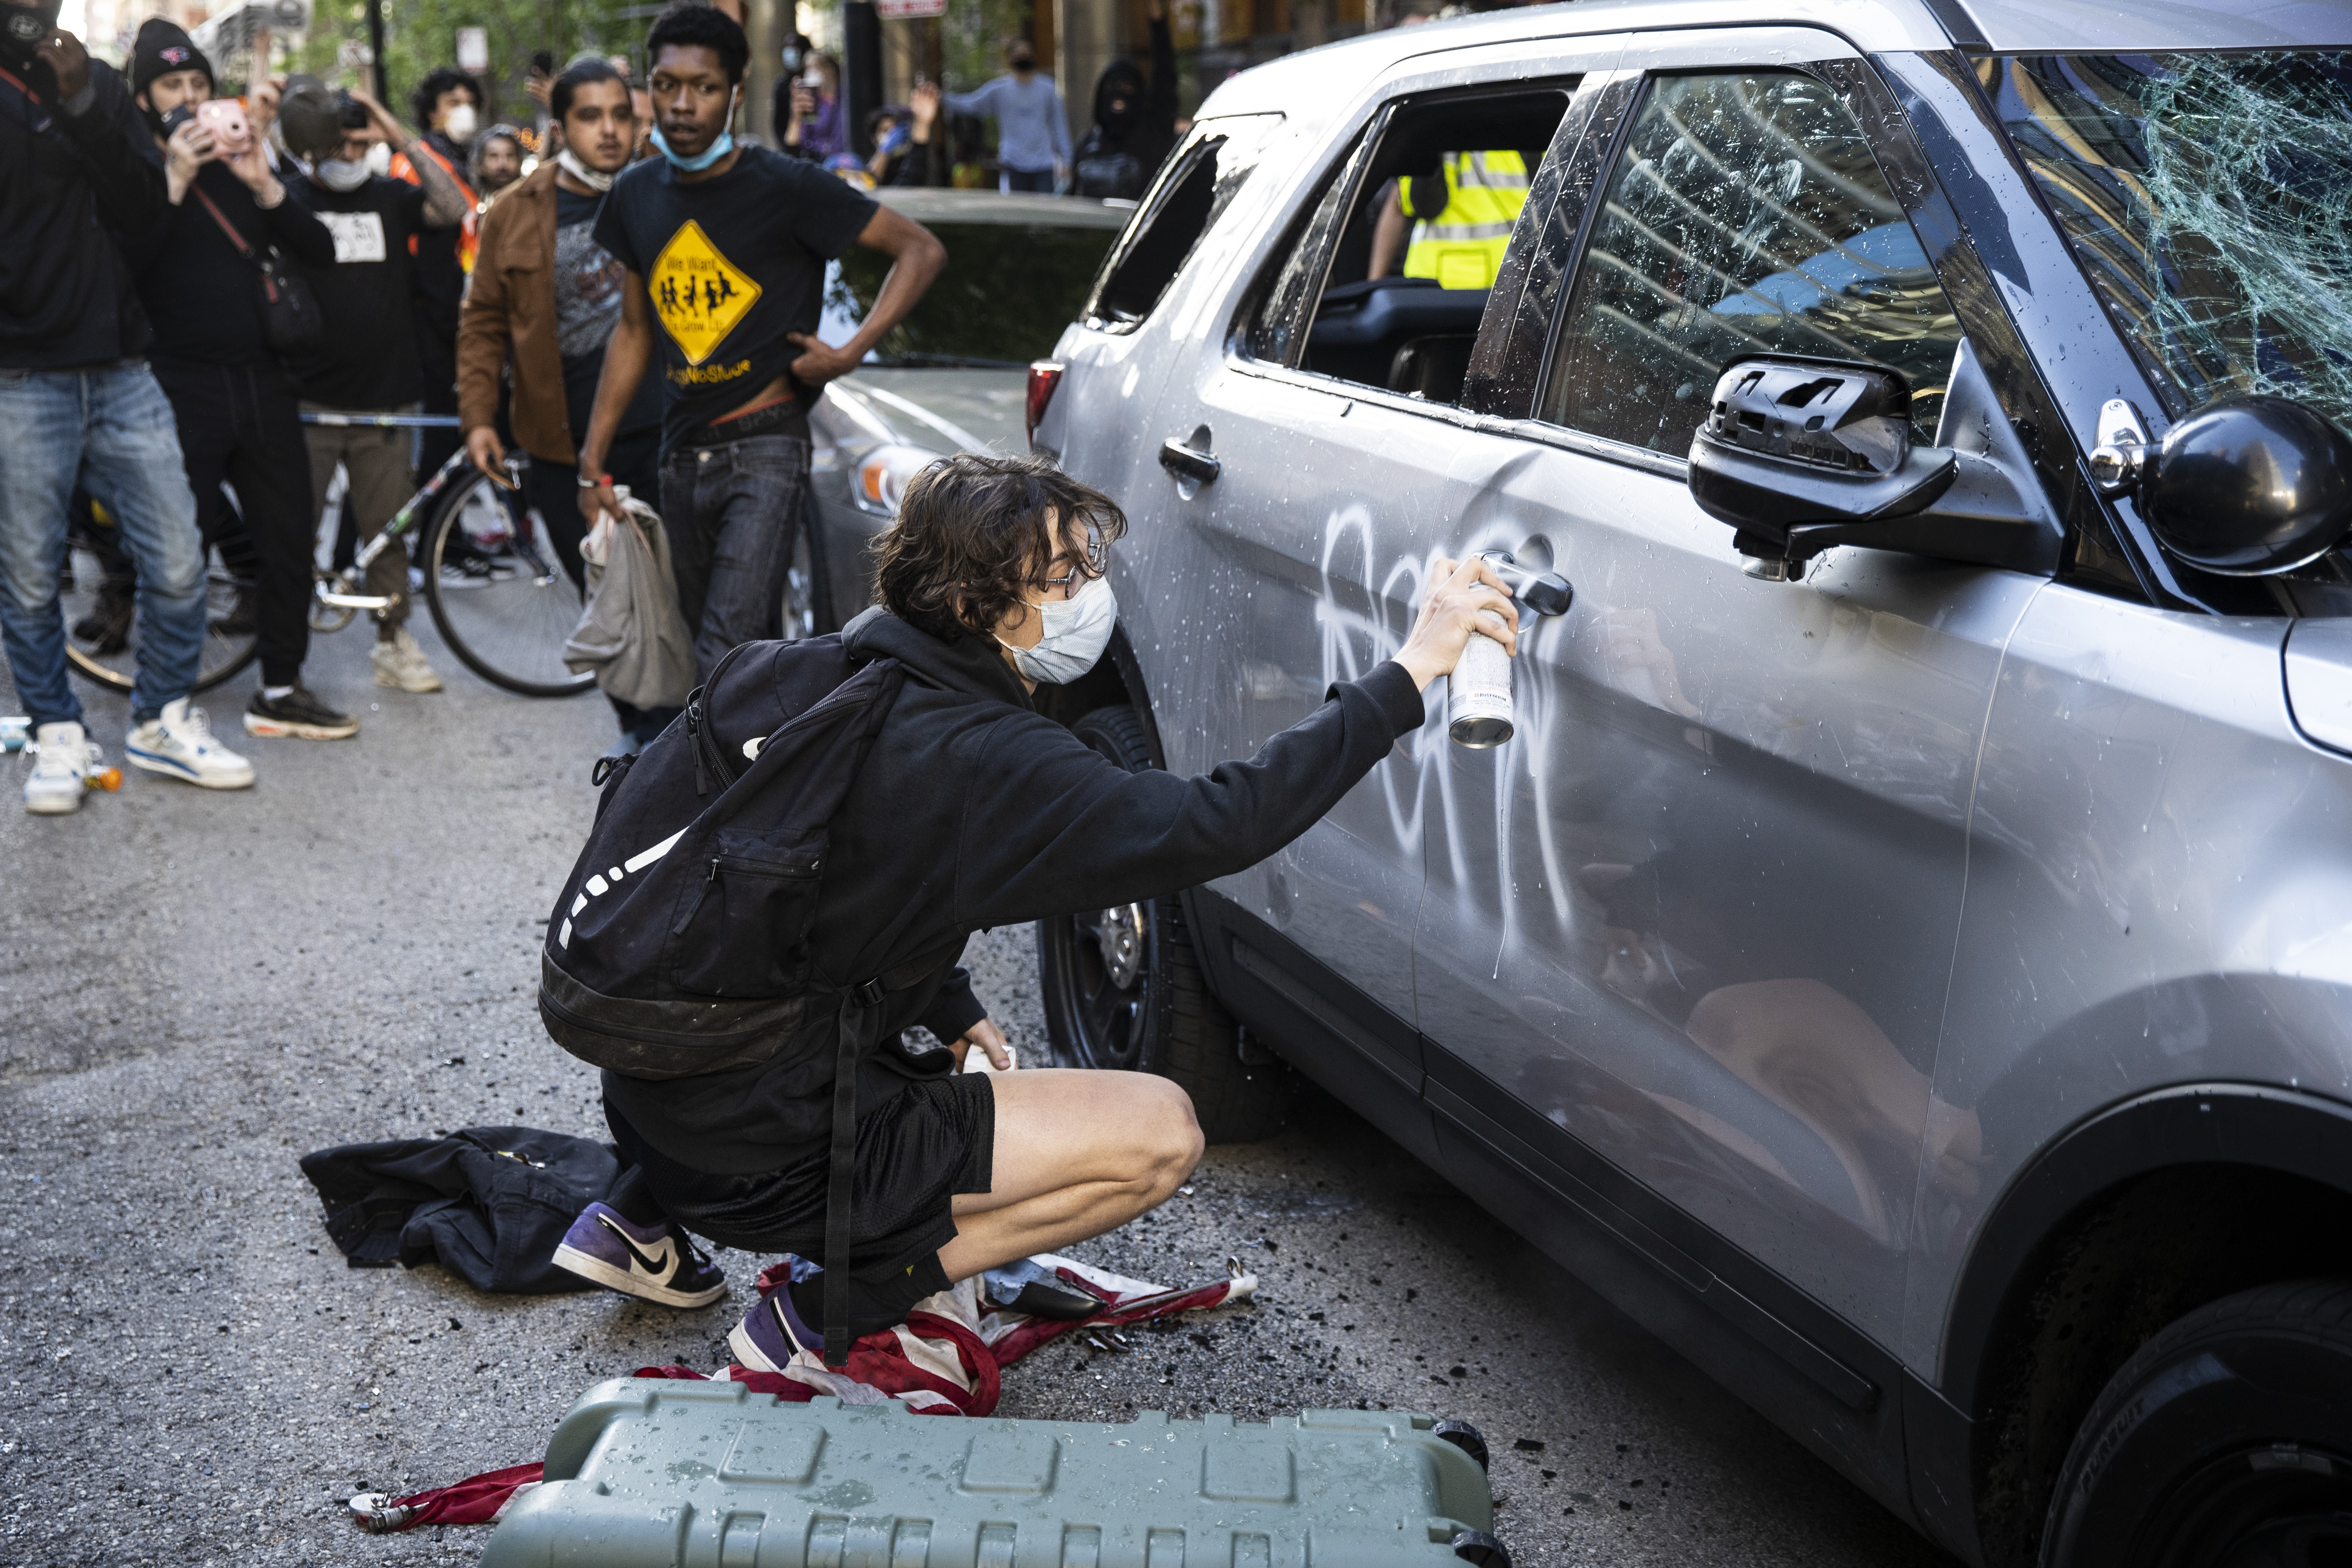 A protester sprays paint on a Chicago Police Department SUV on Kinzie Street near State Street on Saturday. Thousands of protesters in Chicago over several days have joined national outrage over the death of George Floyd, who died in police custody on Memorial Day in Minneapolis.